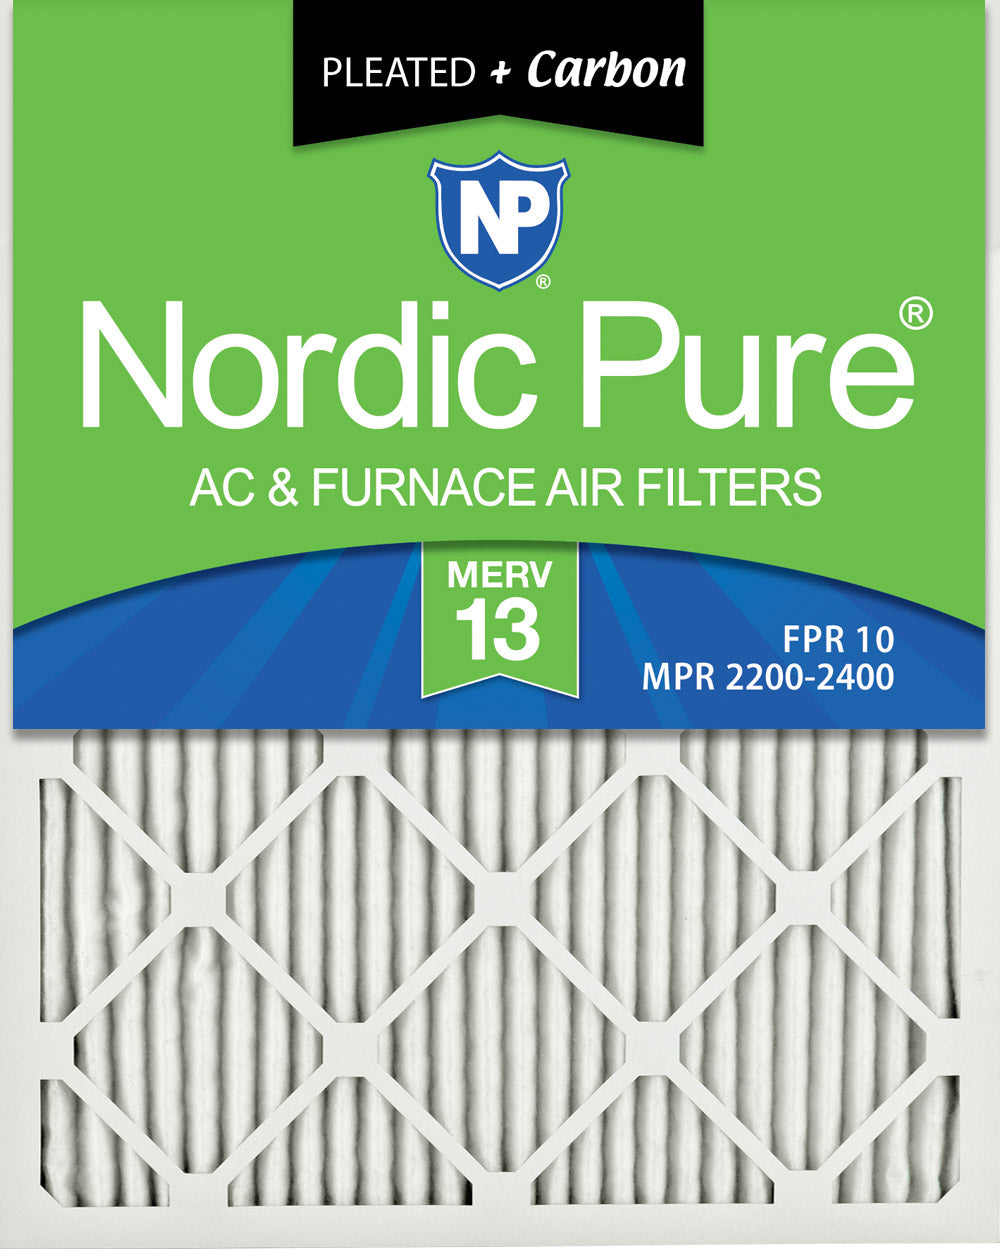 16x25x1 Pleated Air Filters MERV 13 Plus Carbon 3 Pack